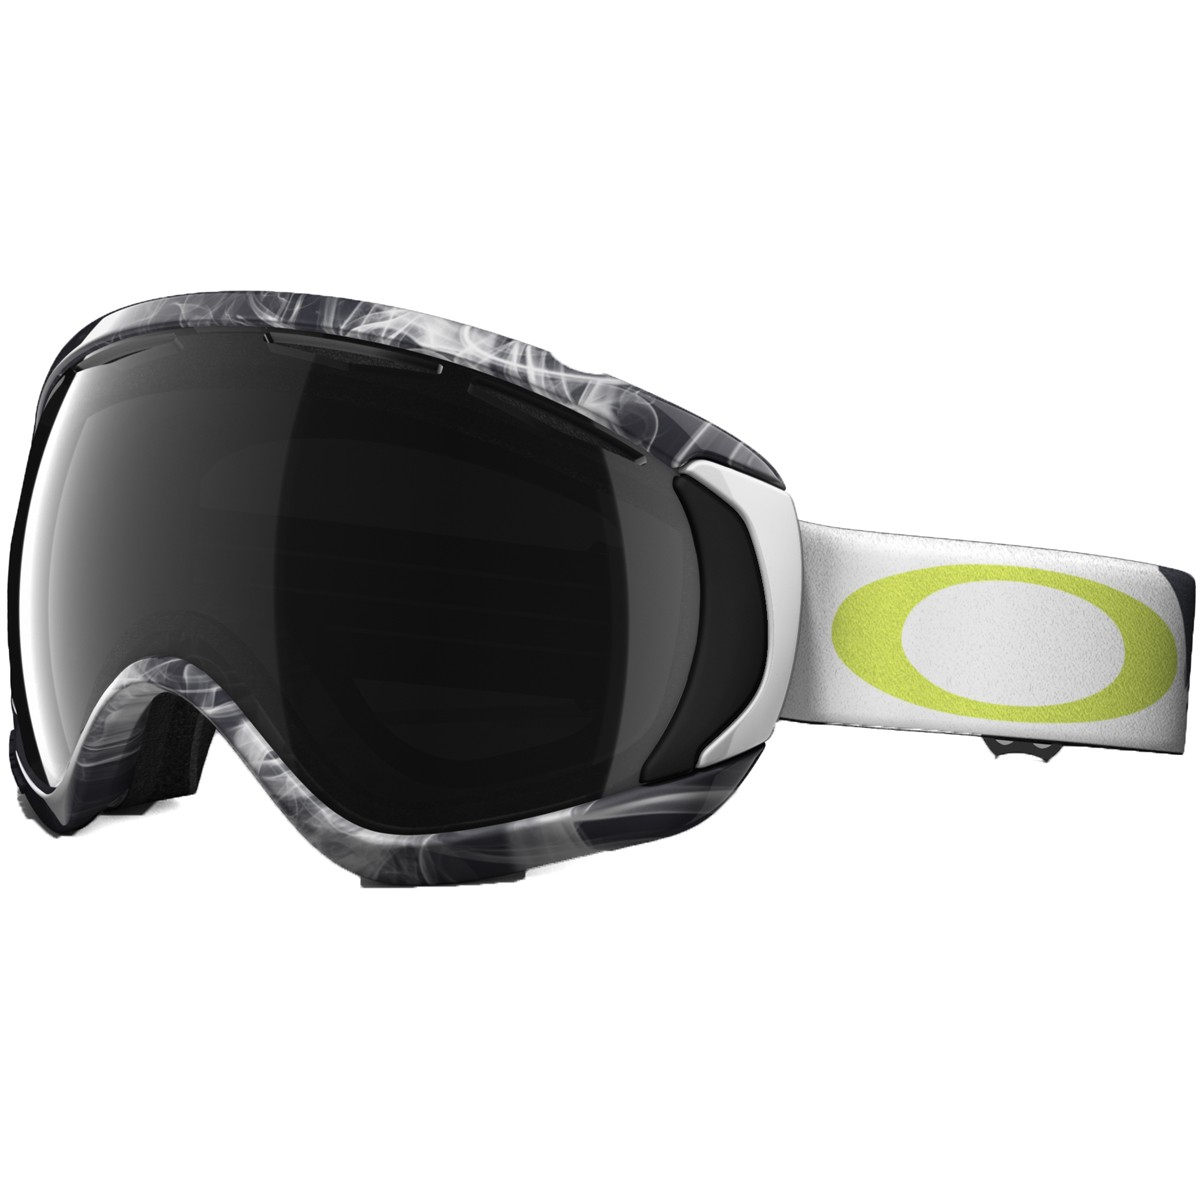 Oakley Canopy Snow Goggle Review Www Tapdance Org